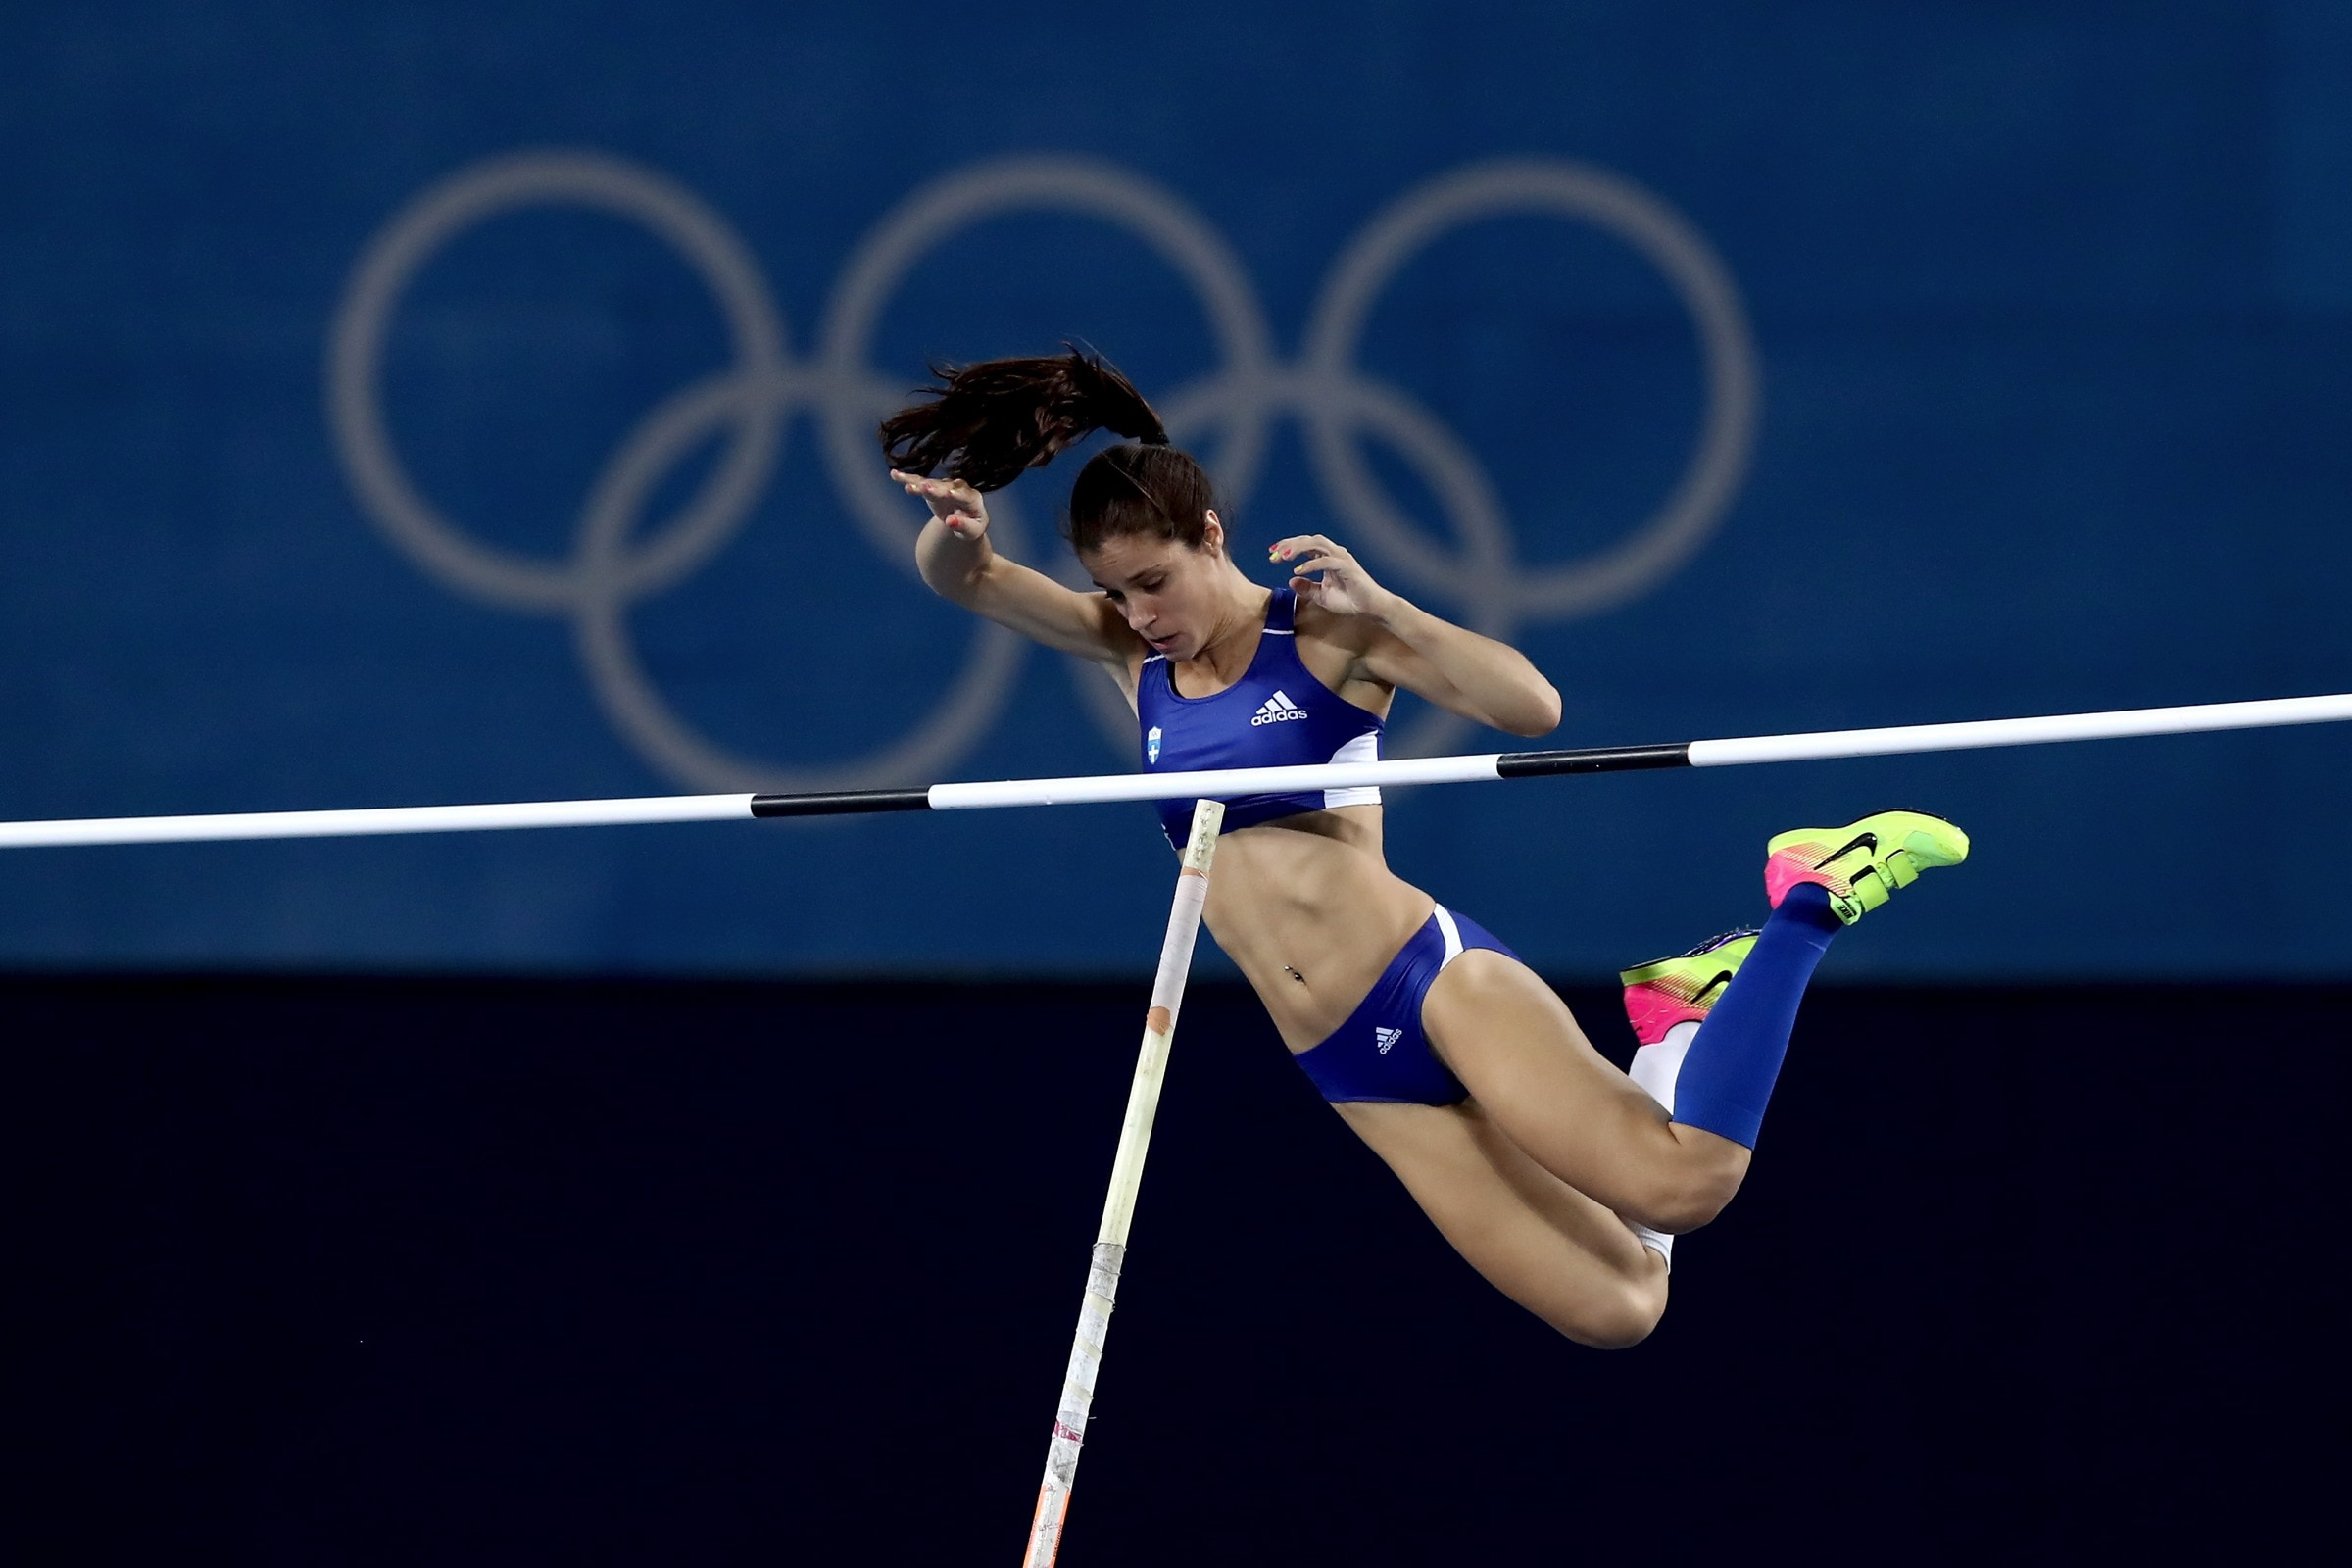 Athletics - Pole Vault Women